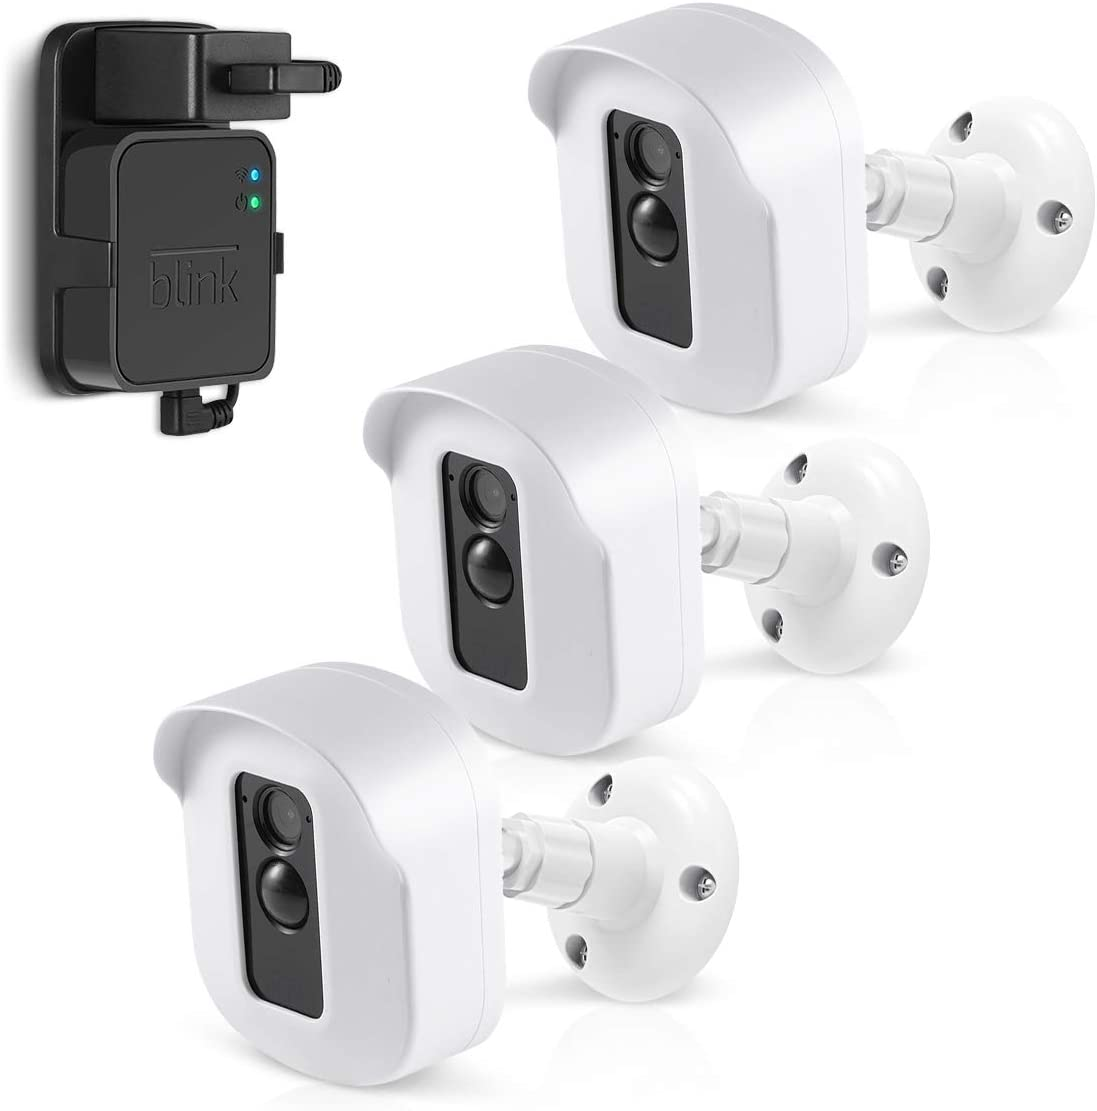 Blink XT2 Camera Wall Mount Bracket, Caremoo 3 Pack Weatherproof Protective Housing/Mount and Blink Sync Module Outlet Mount for Blink XT2/ Blink XT Outdoor/Indoor Smart Security Camera (White)